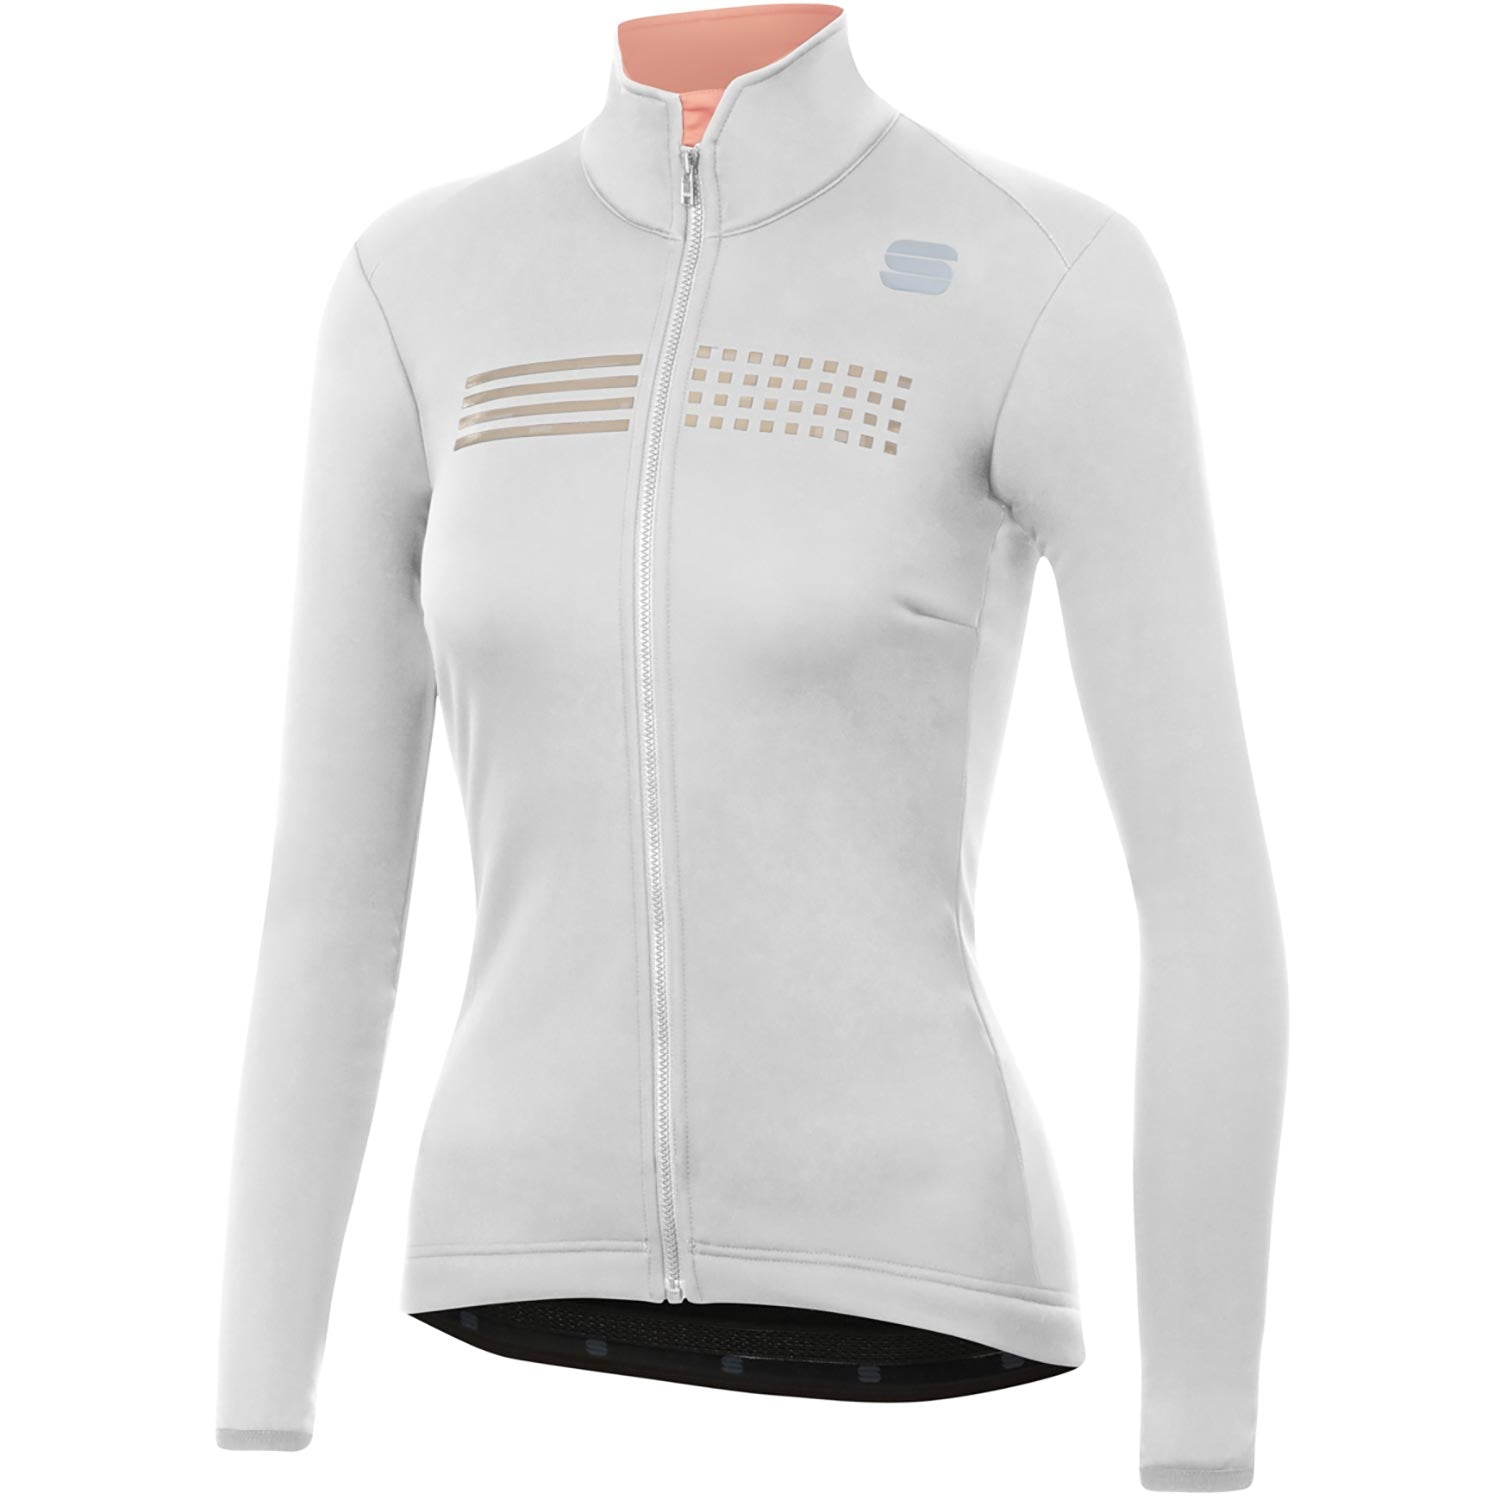 Sportful-Sportful Tempo Women's Jacket-White-XS-SF205261011-saddleback-elite-performance-cycling